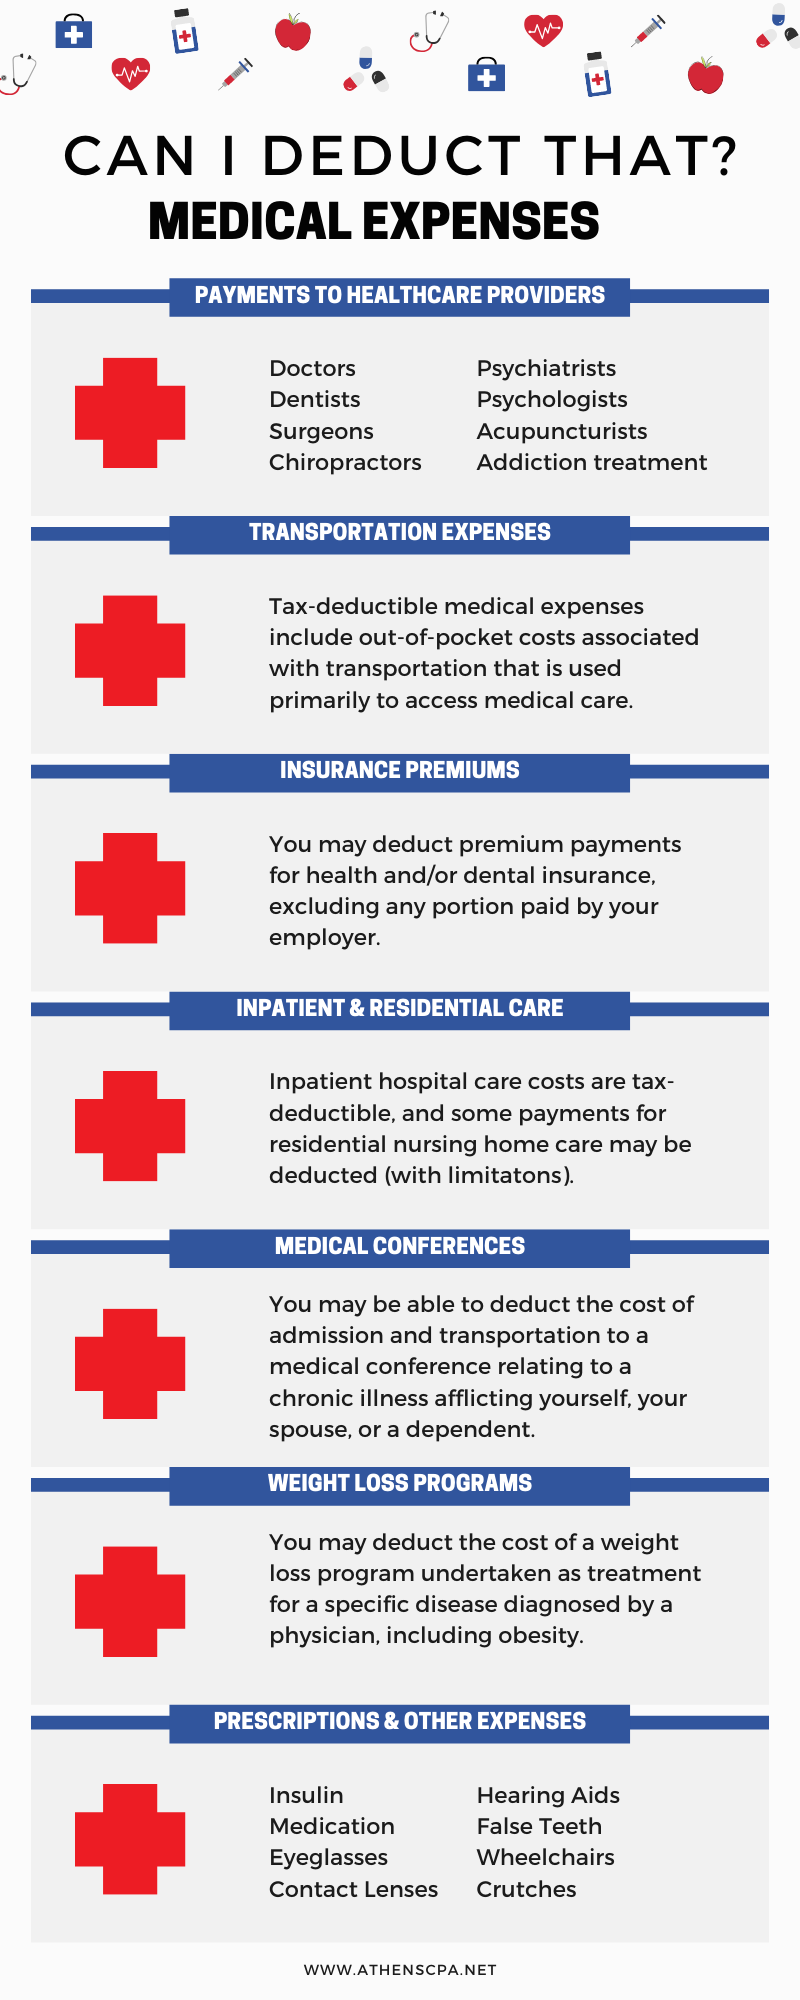 Can I Deduct That? Medical Expenses Infographic